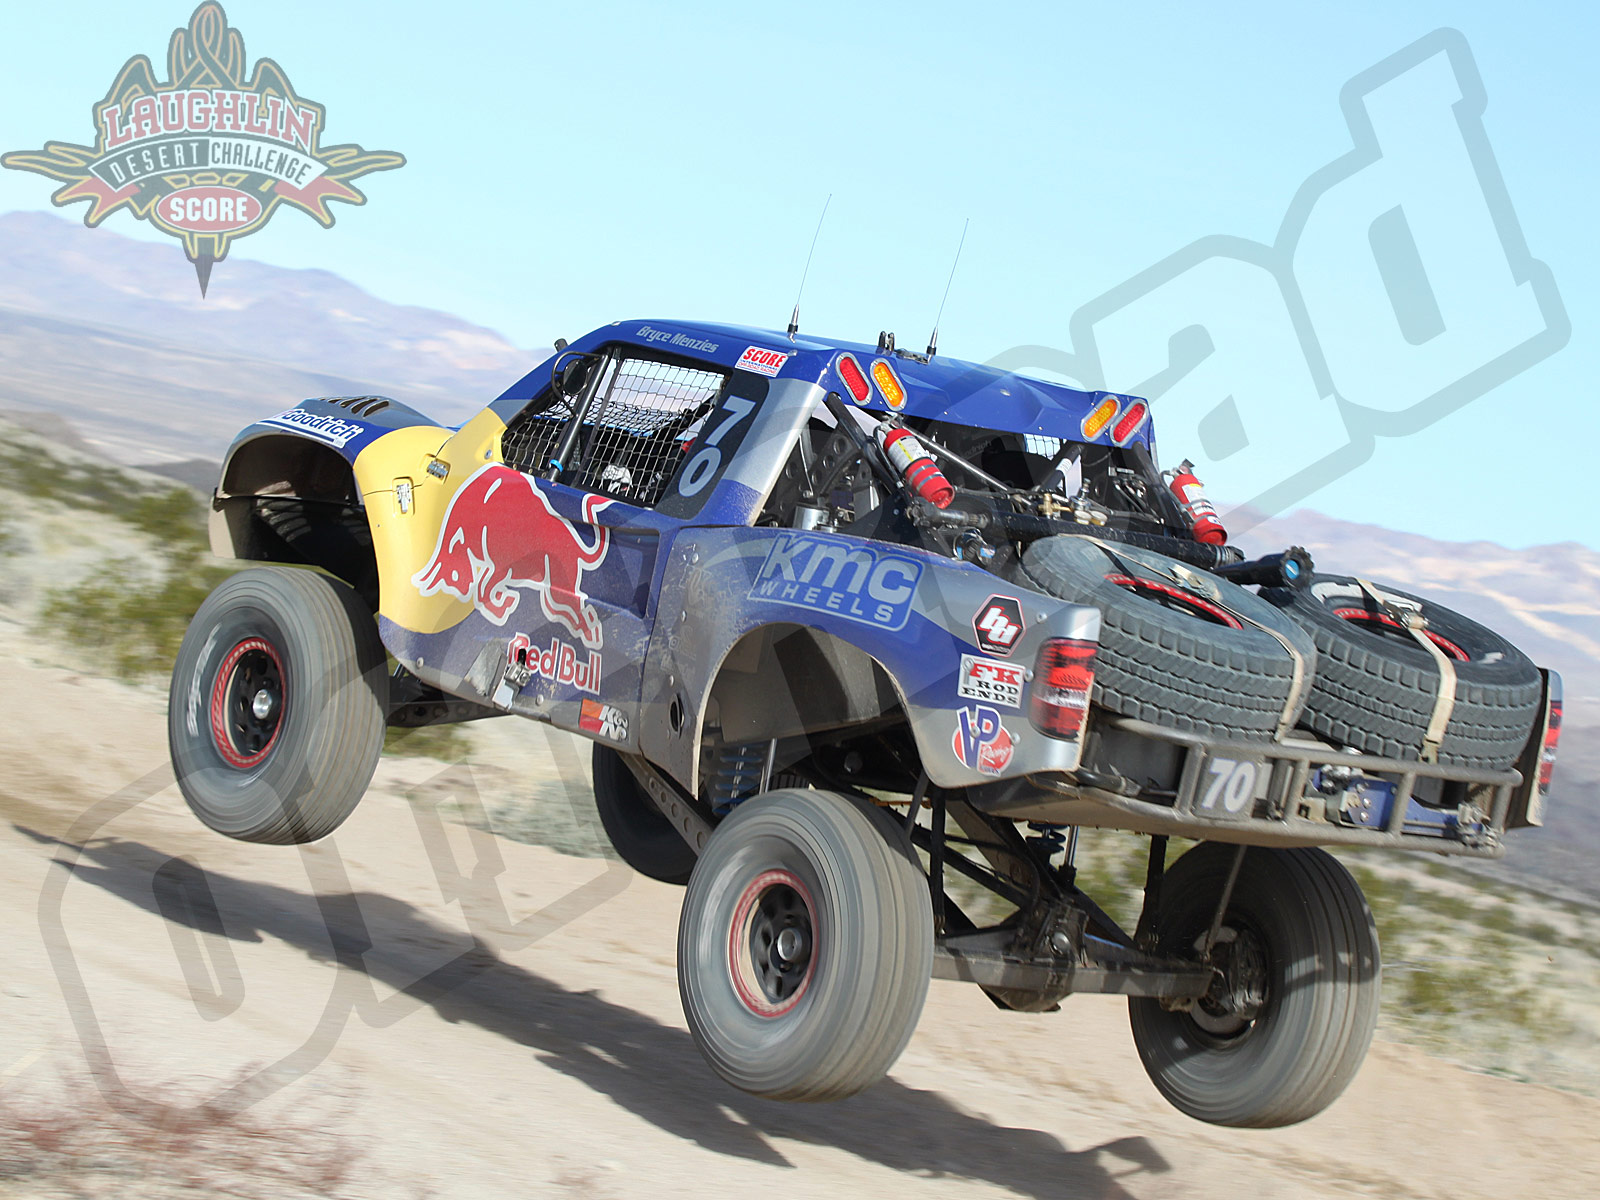 030311or 6784+2011 score laughlin desert challenge+trophy trucks sunday